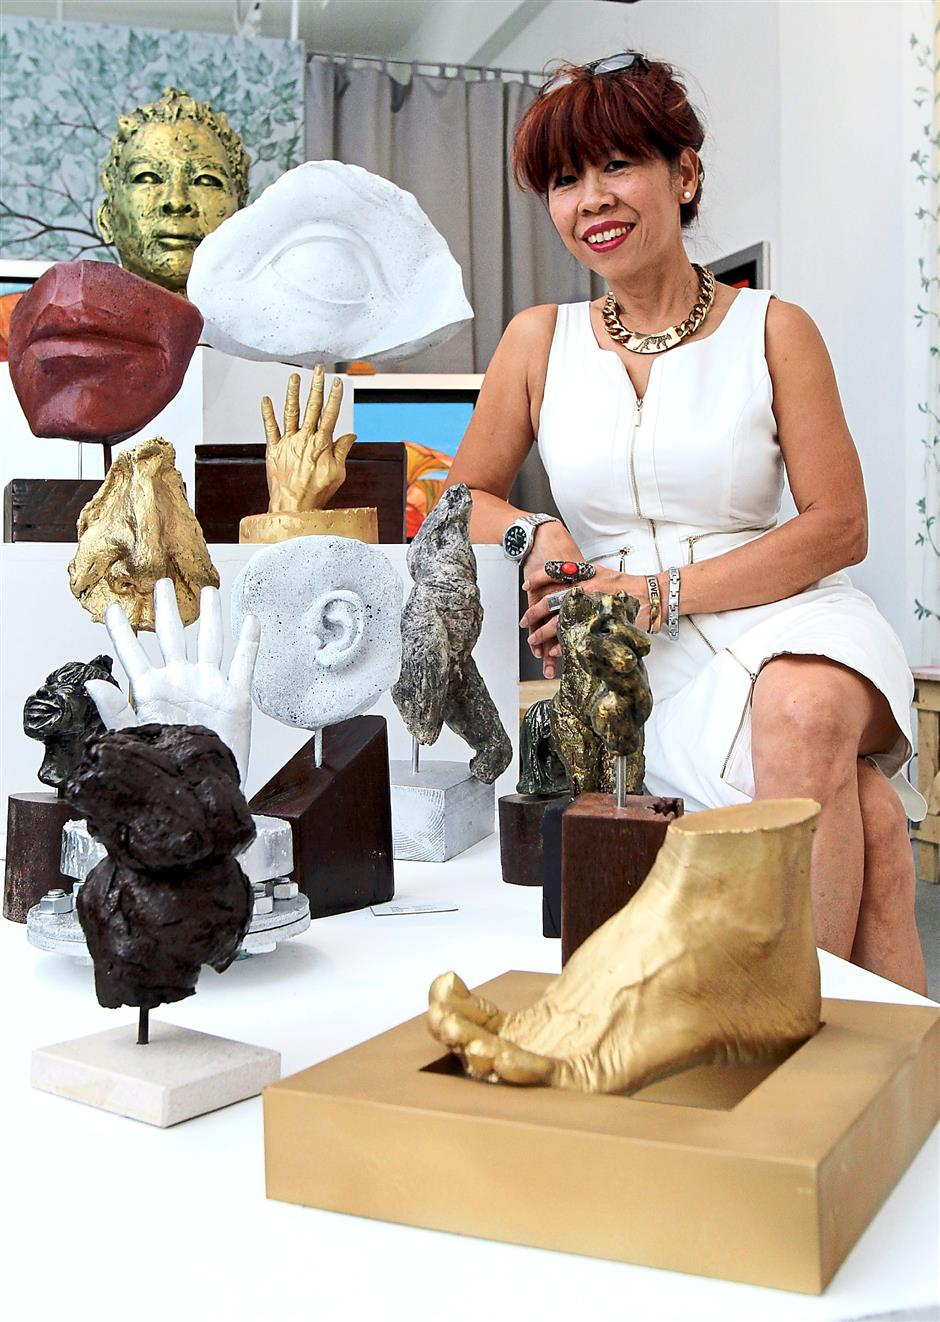 Fond of sculpting: Xie showing her sculptures that are on sale at the exhibition.